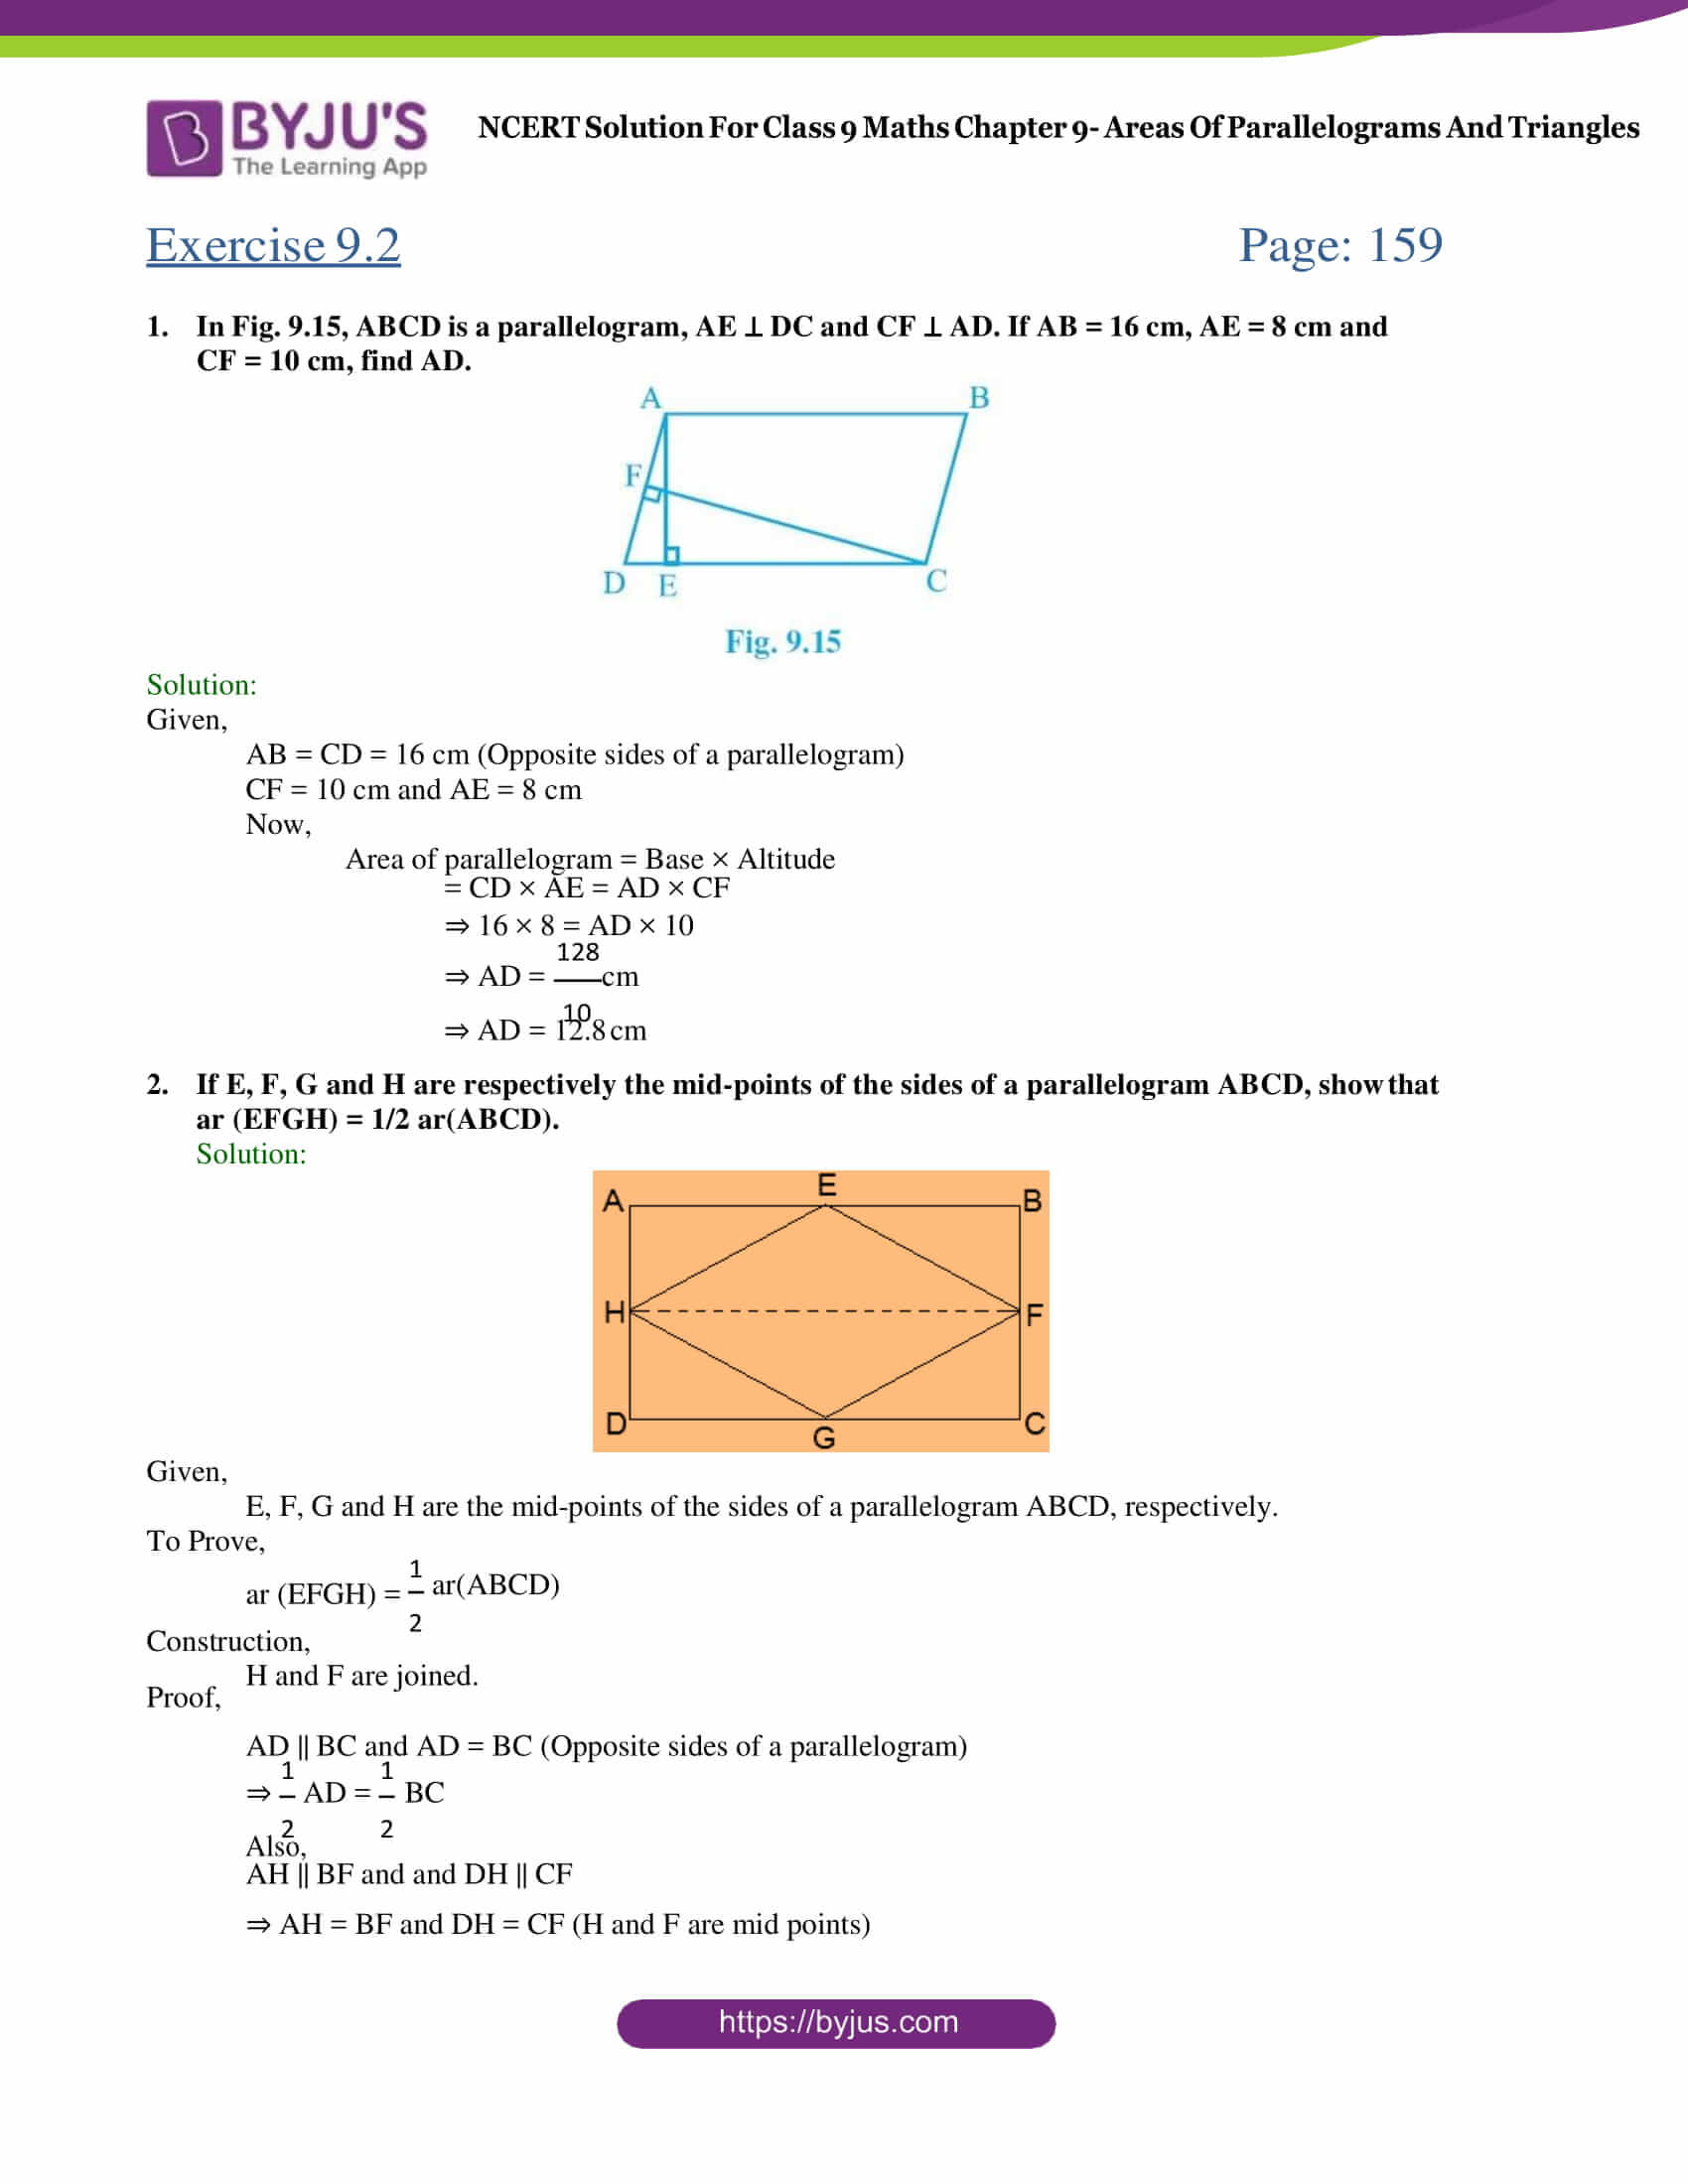 NCERT Solution Class 9 Maths Chapter 9 Areas of Parallelograms and triangles Exercise 9.2 Part 1